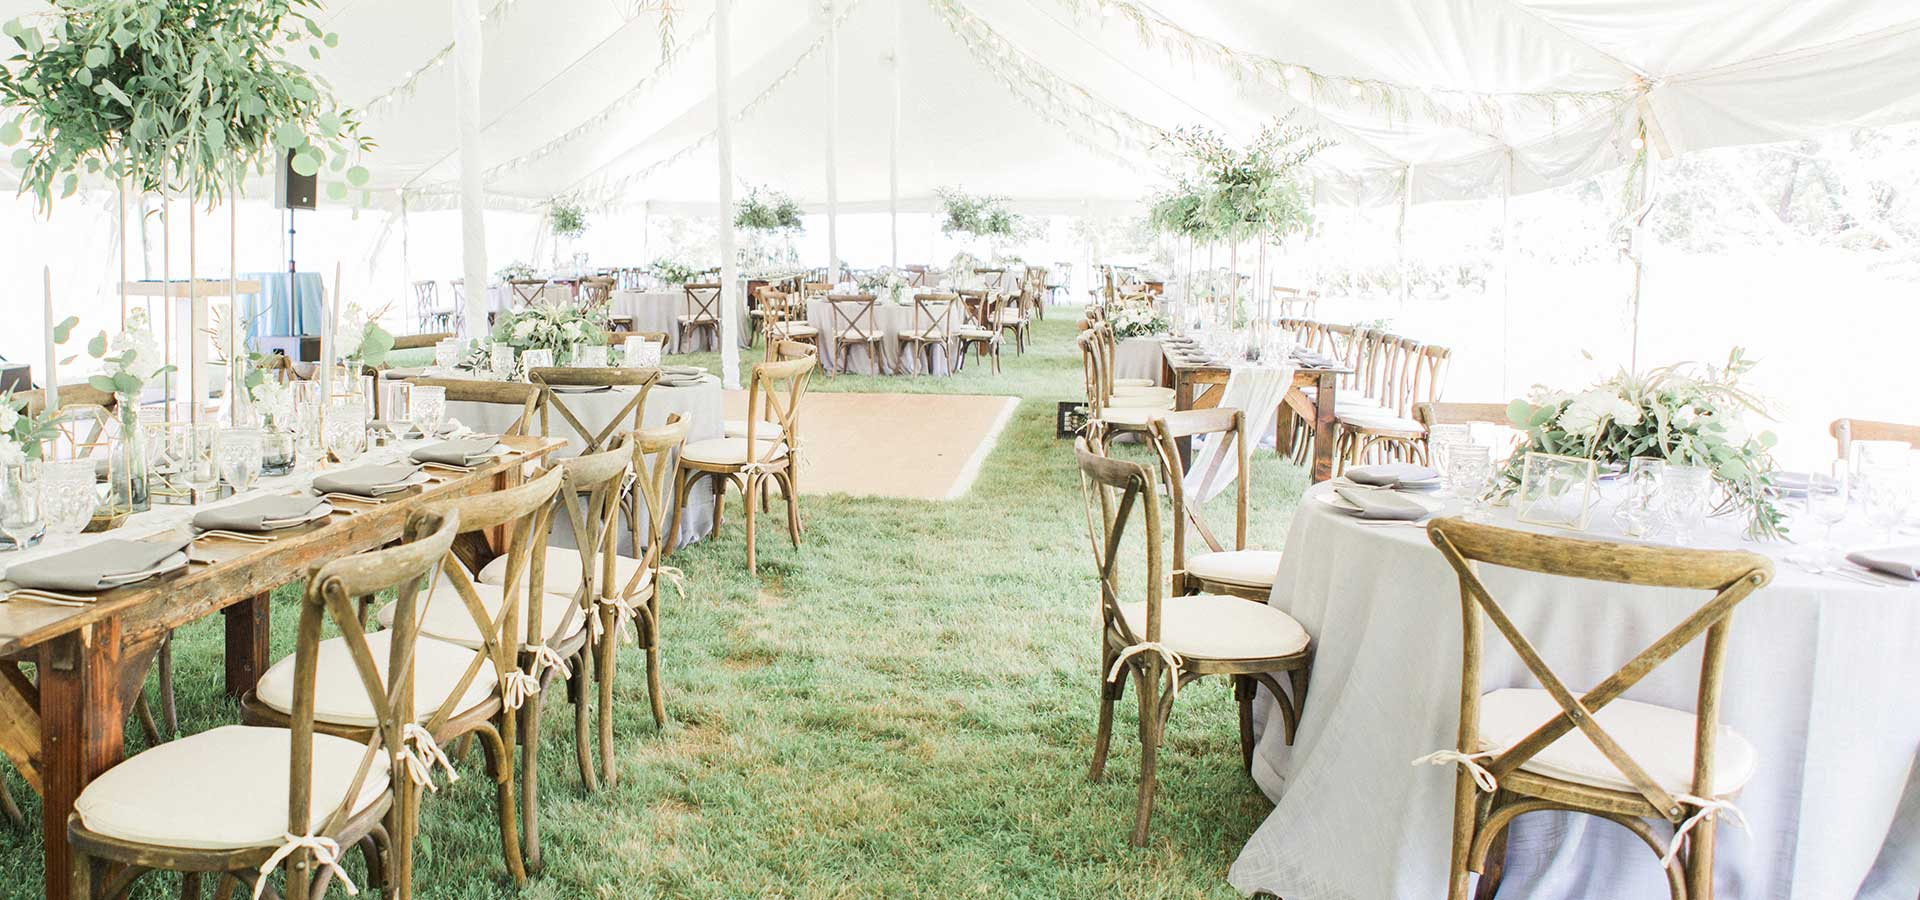 Event Rentals in Central Pennsylvania